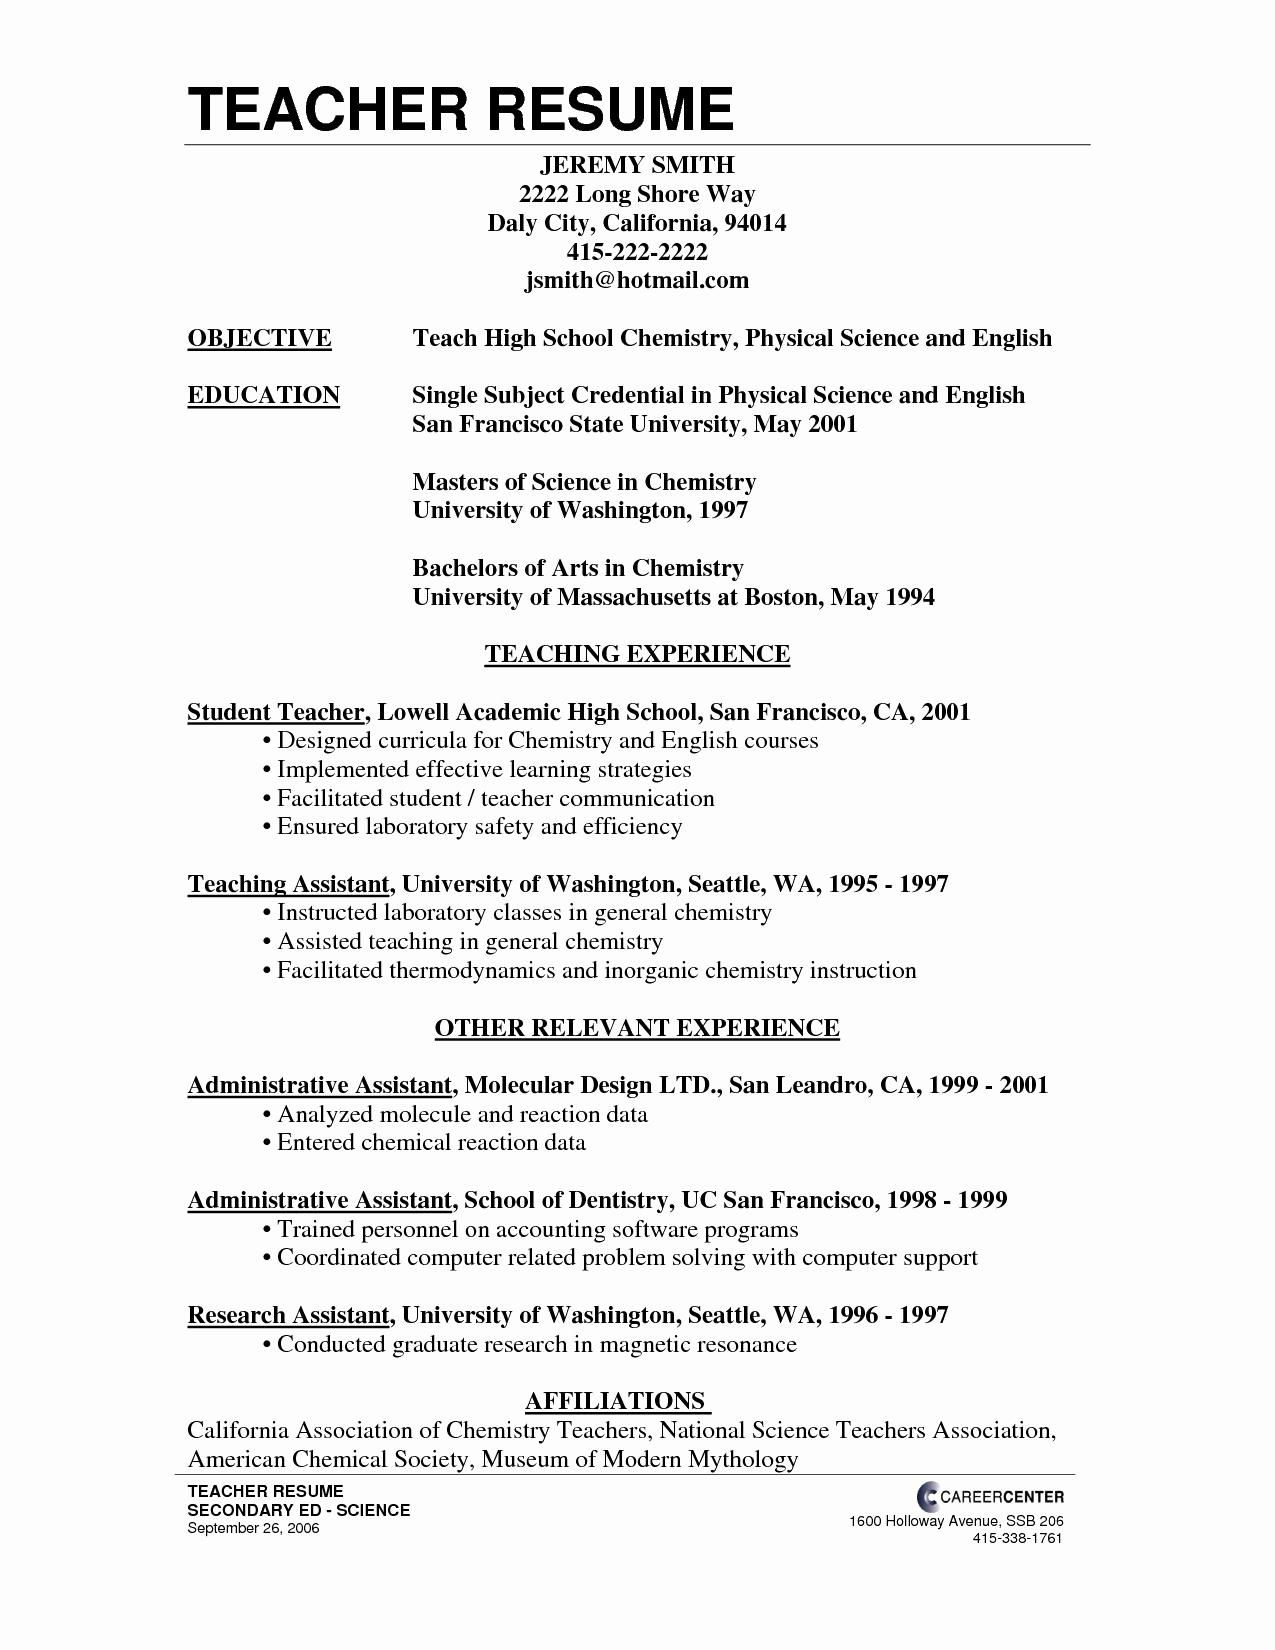 Professional Resume and Cover Letter Template - Resume Cover Letter Example New Free Cover Letter Templates Examples